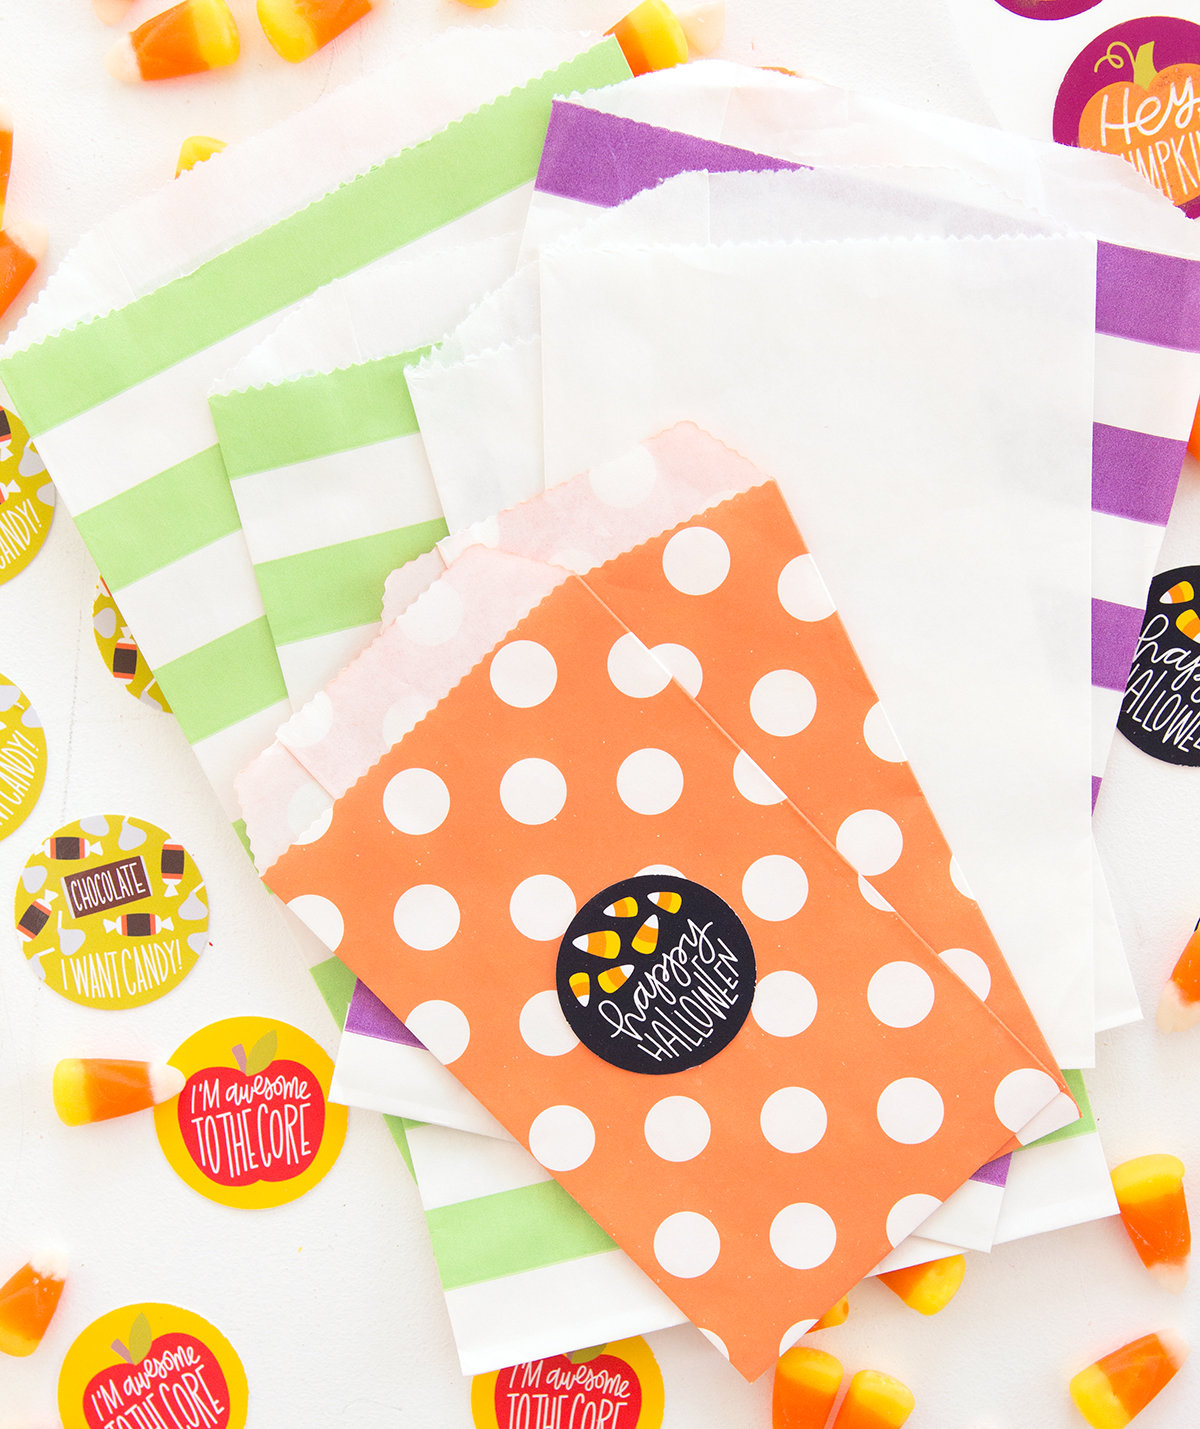 scratch-and-sniff-stickers